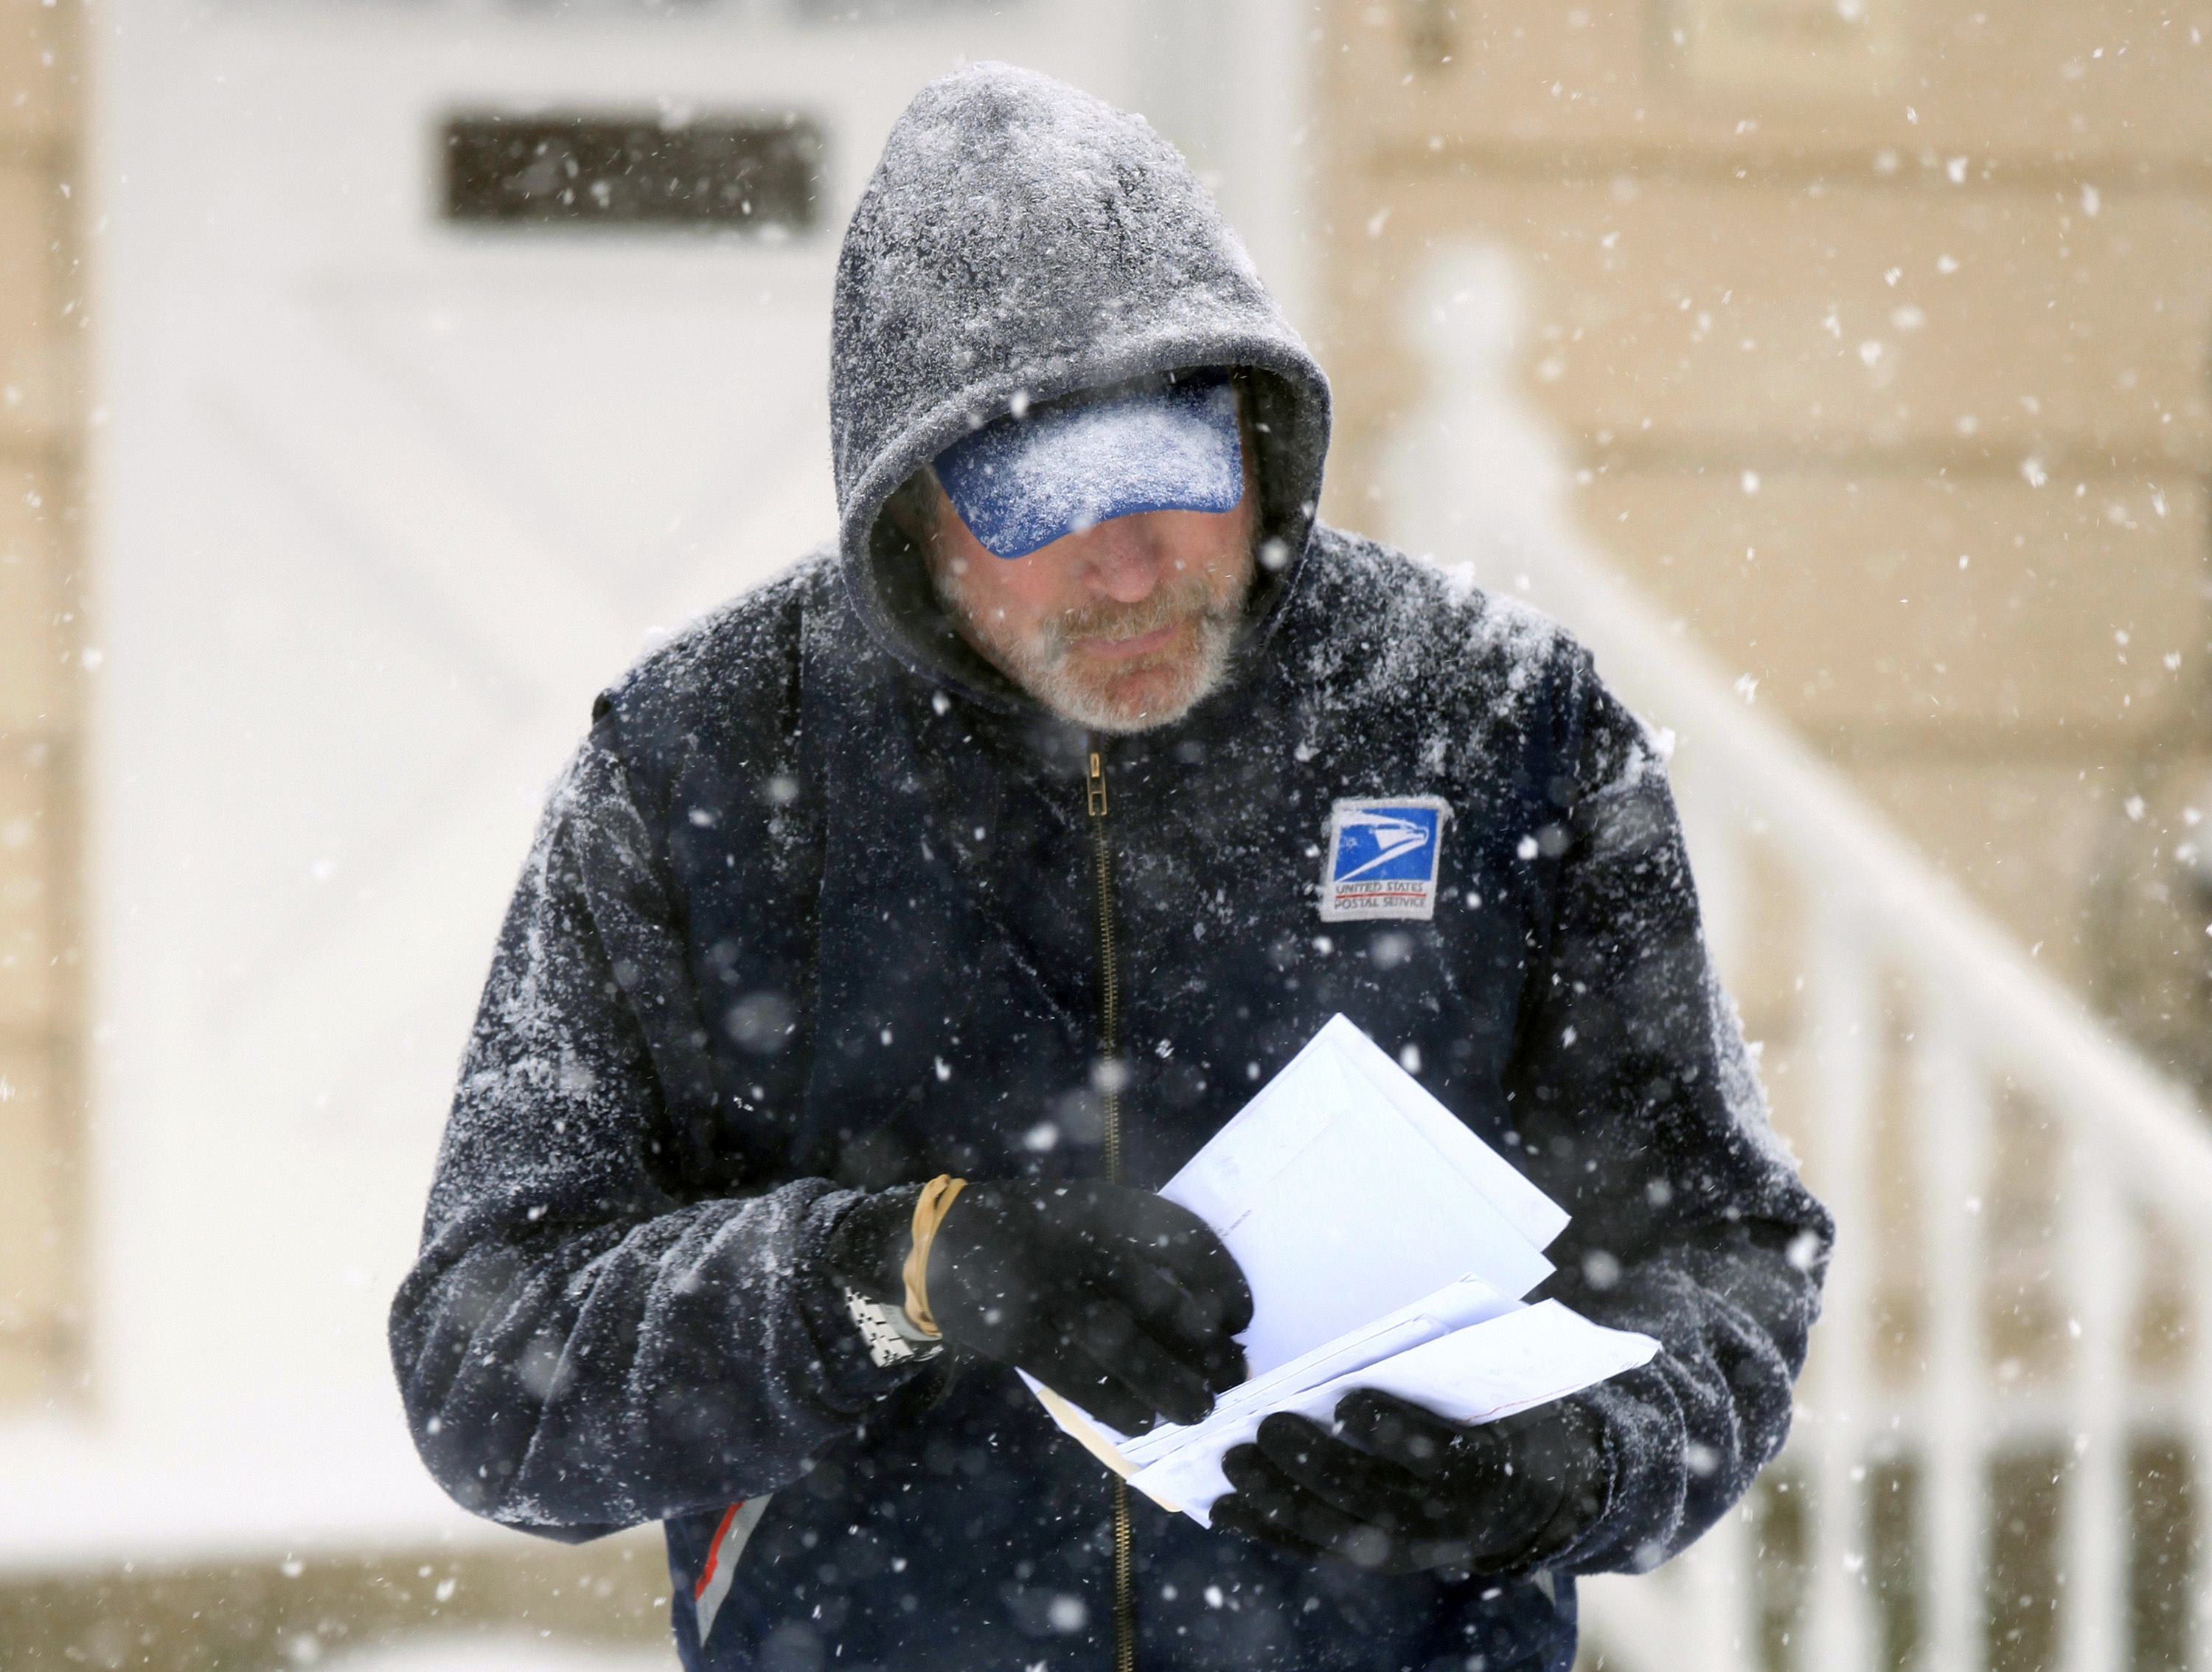 This Saturday Dec. 19, 2009 photo shows U.S. Post Office letter carrier Tim Bell delivering the mail during a snow storm in Havertown, PA. (Jacqueline Larma/AP)